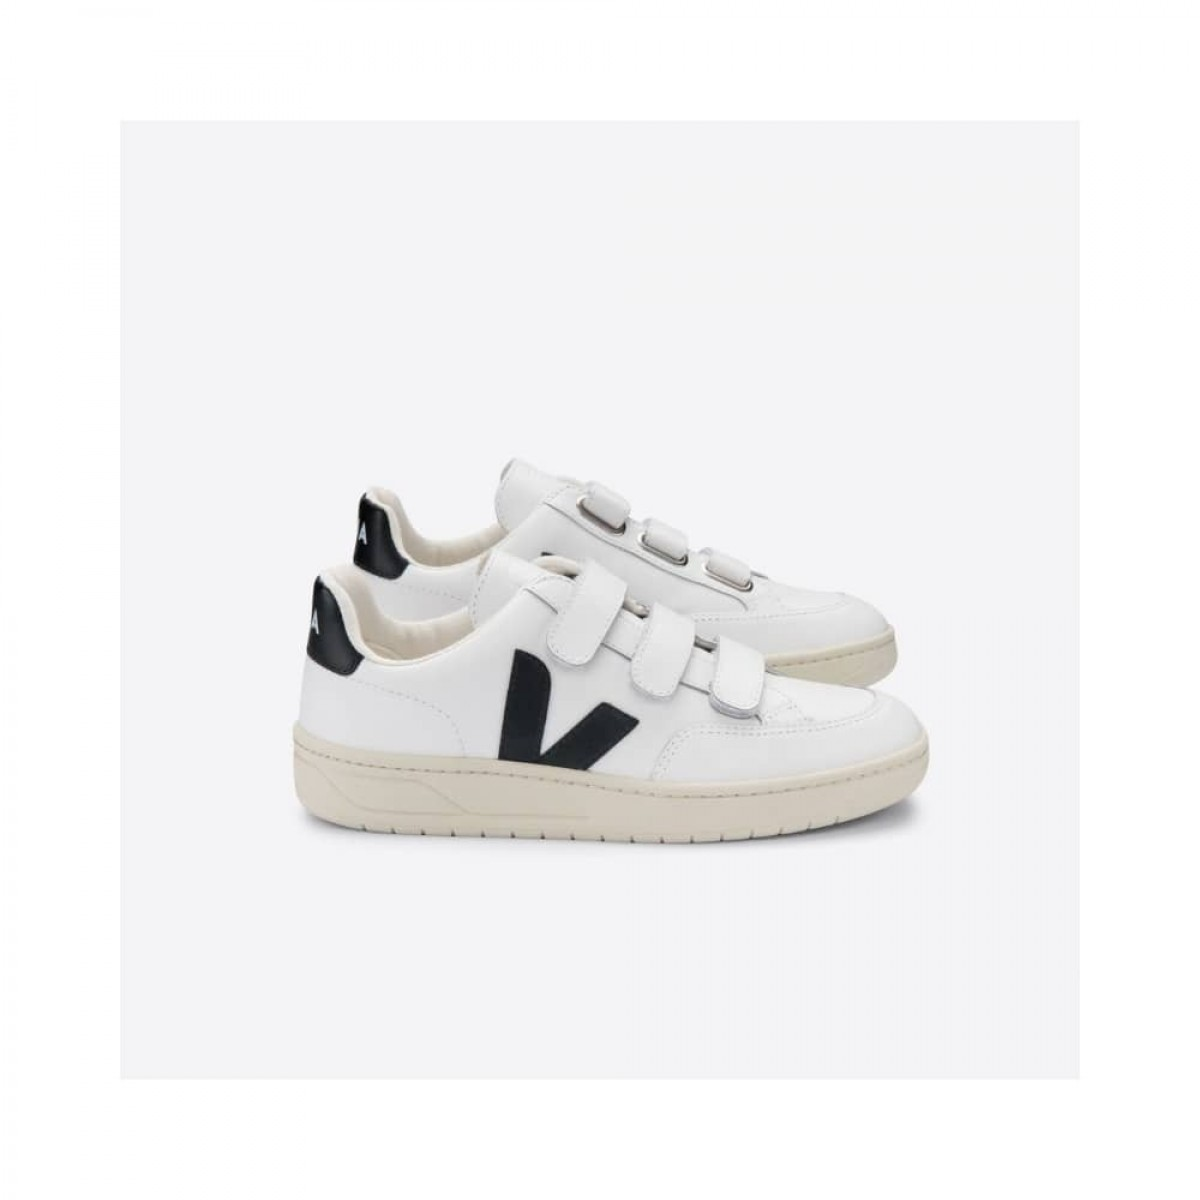 v-lock leather - extra white with black